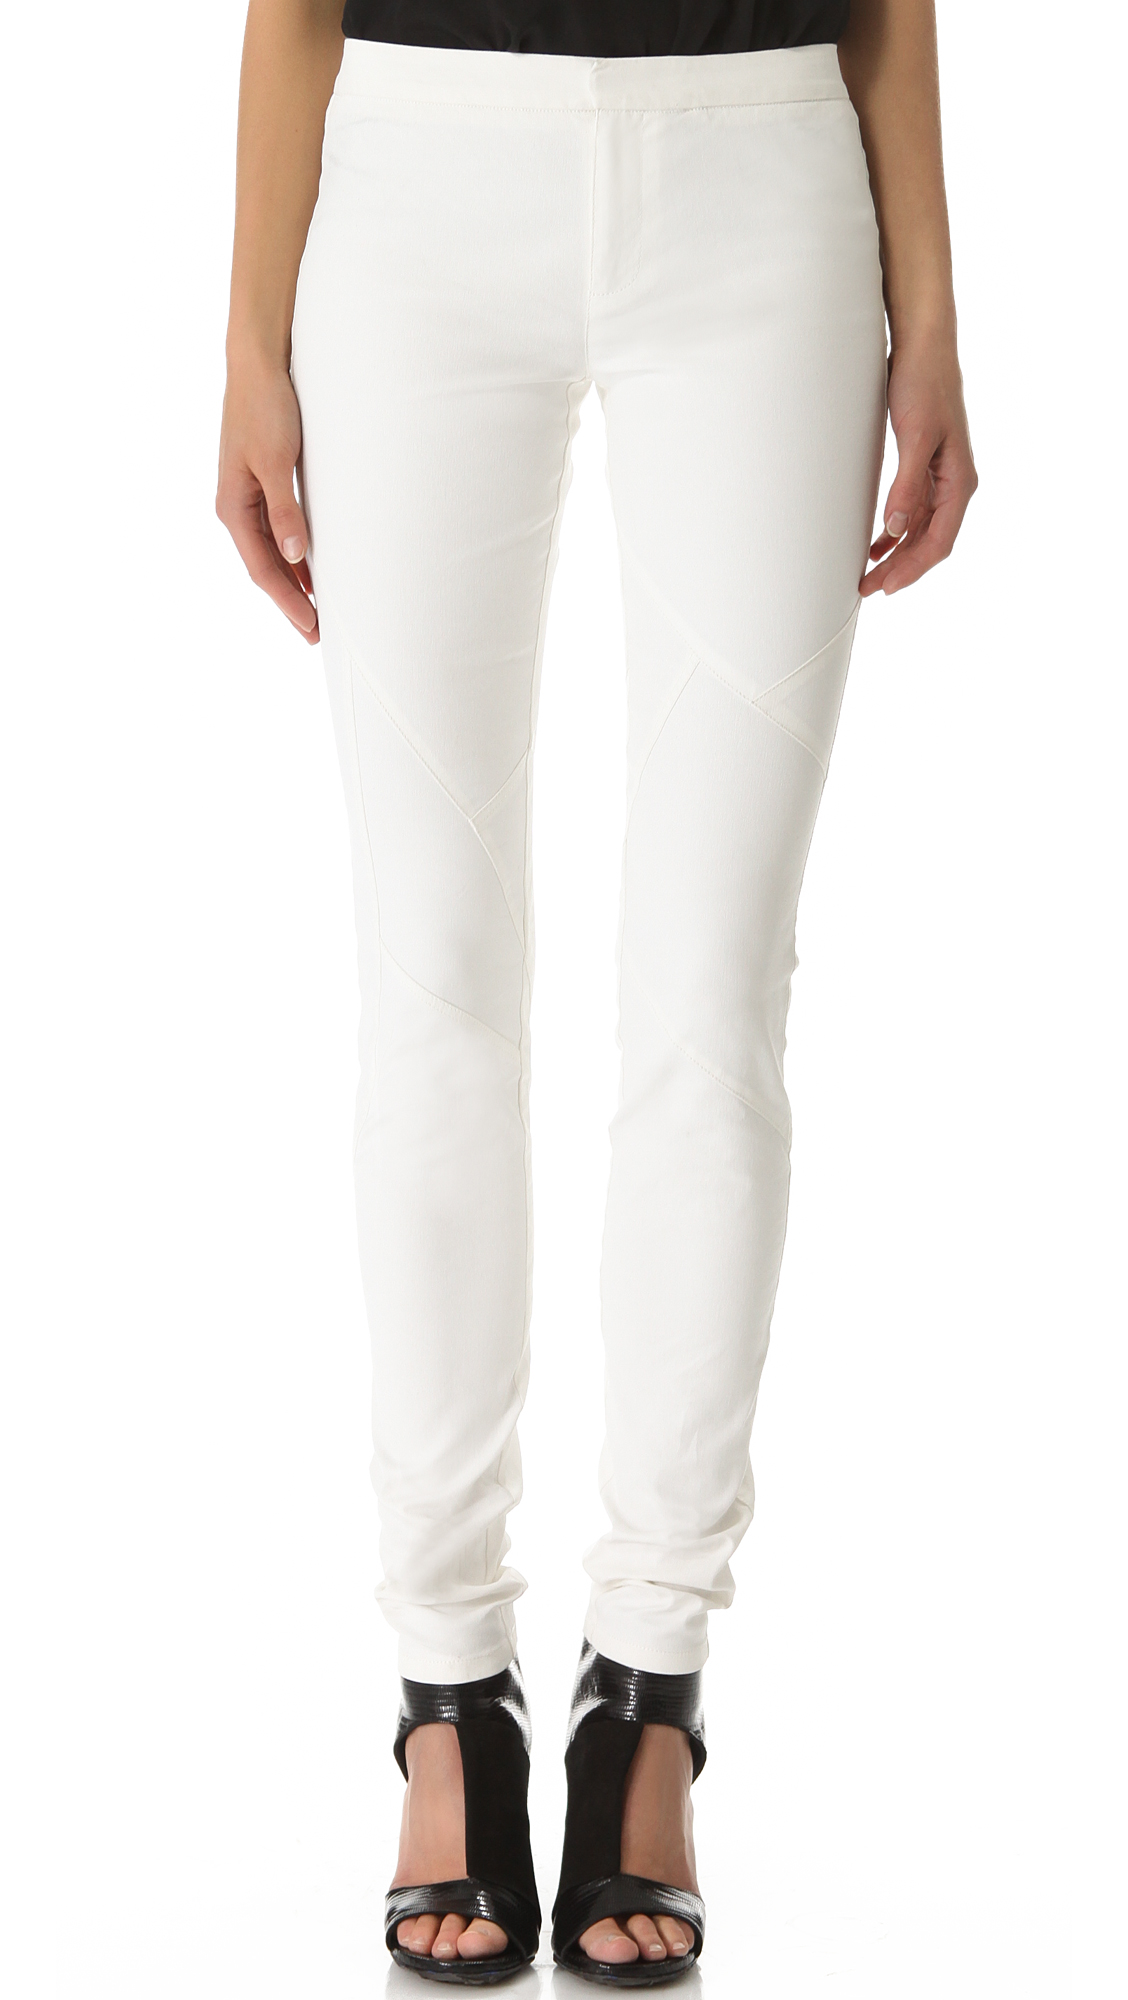 White Jean Leggings are a wise choice to indulge your relaxed side. Look for the material and clothing size from the many listed items to find exactly what you need. Sift through a .